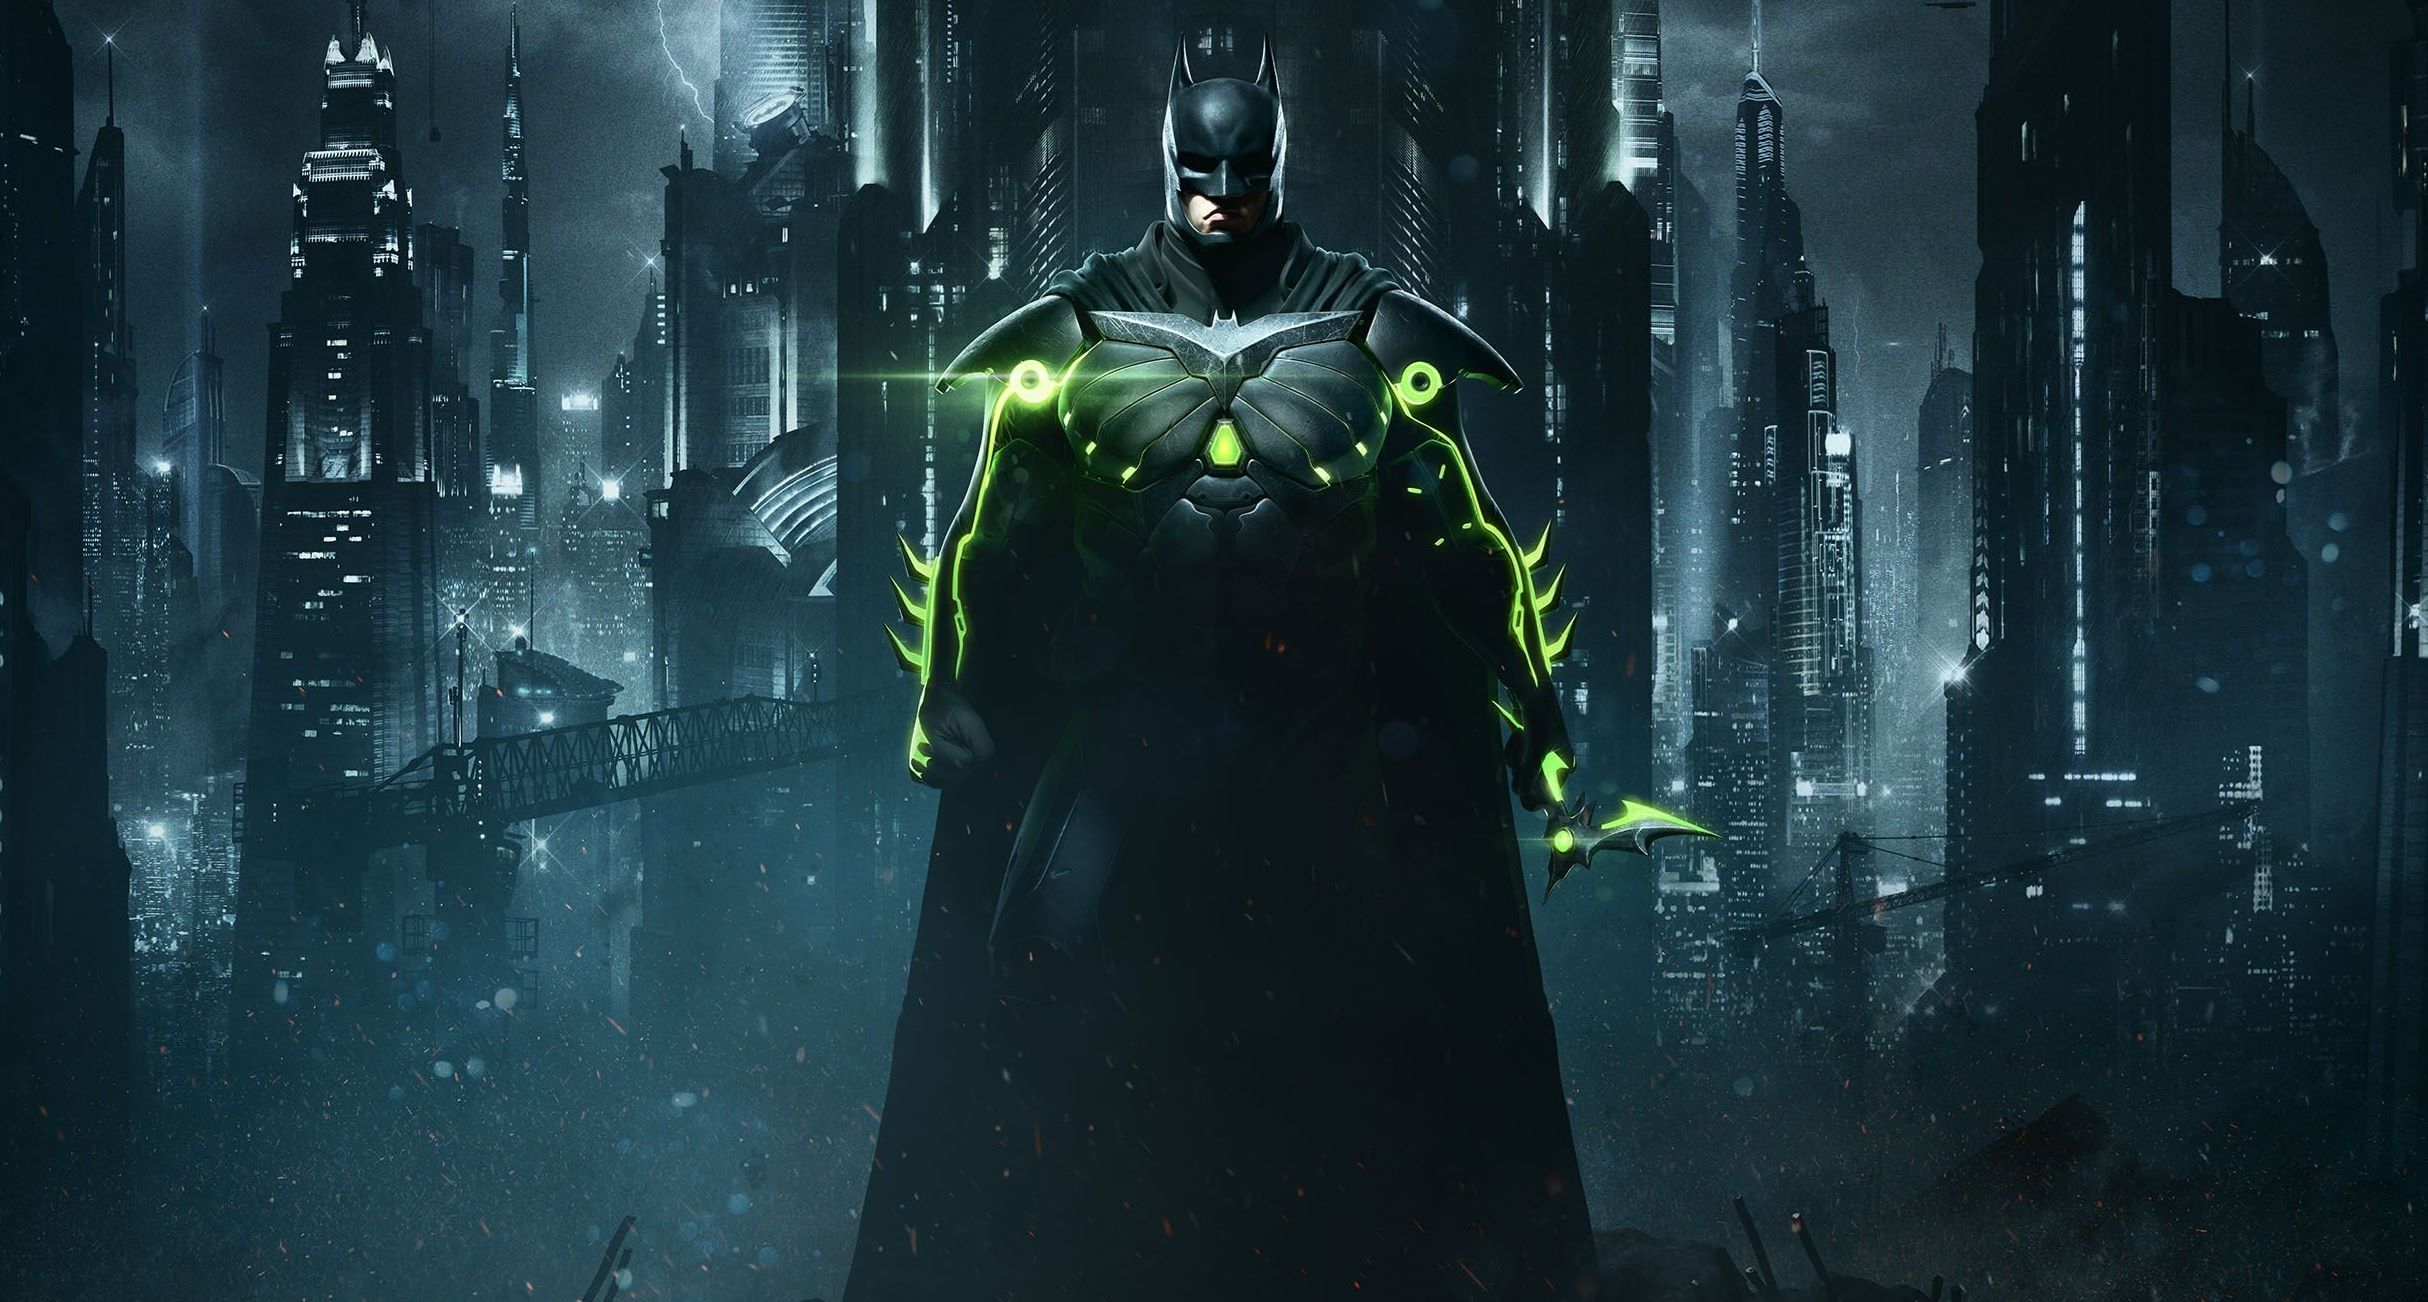 injustice_2_batman_artwork_crop_1